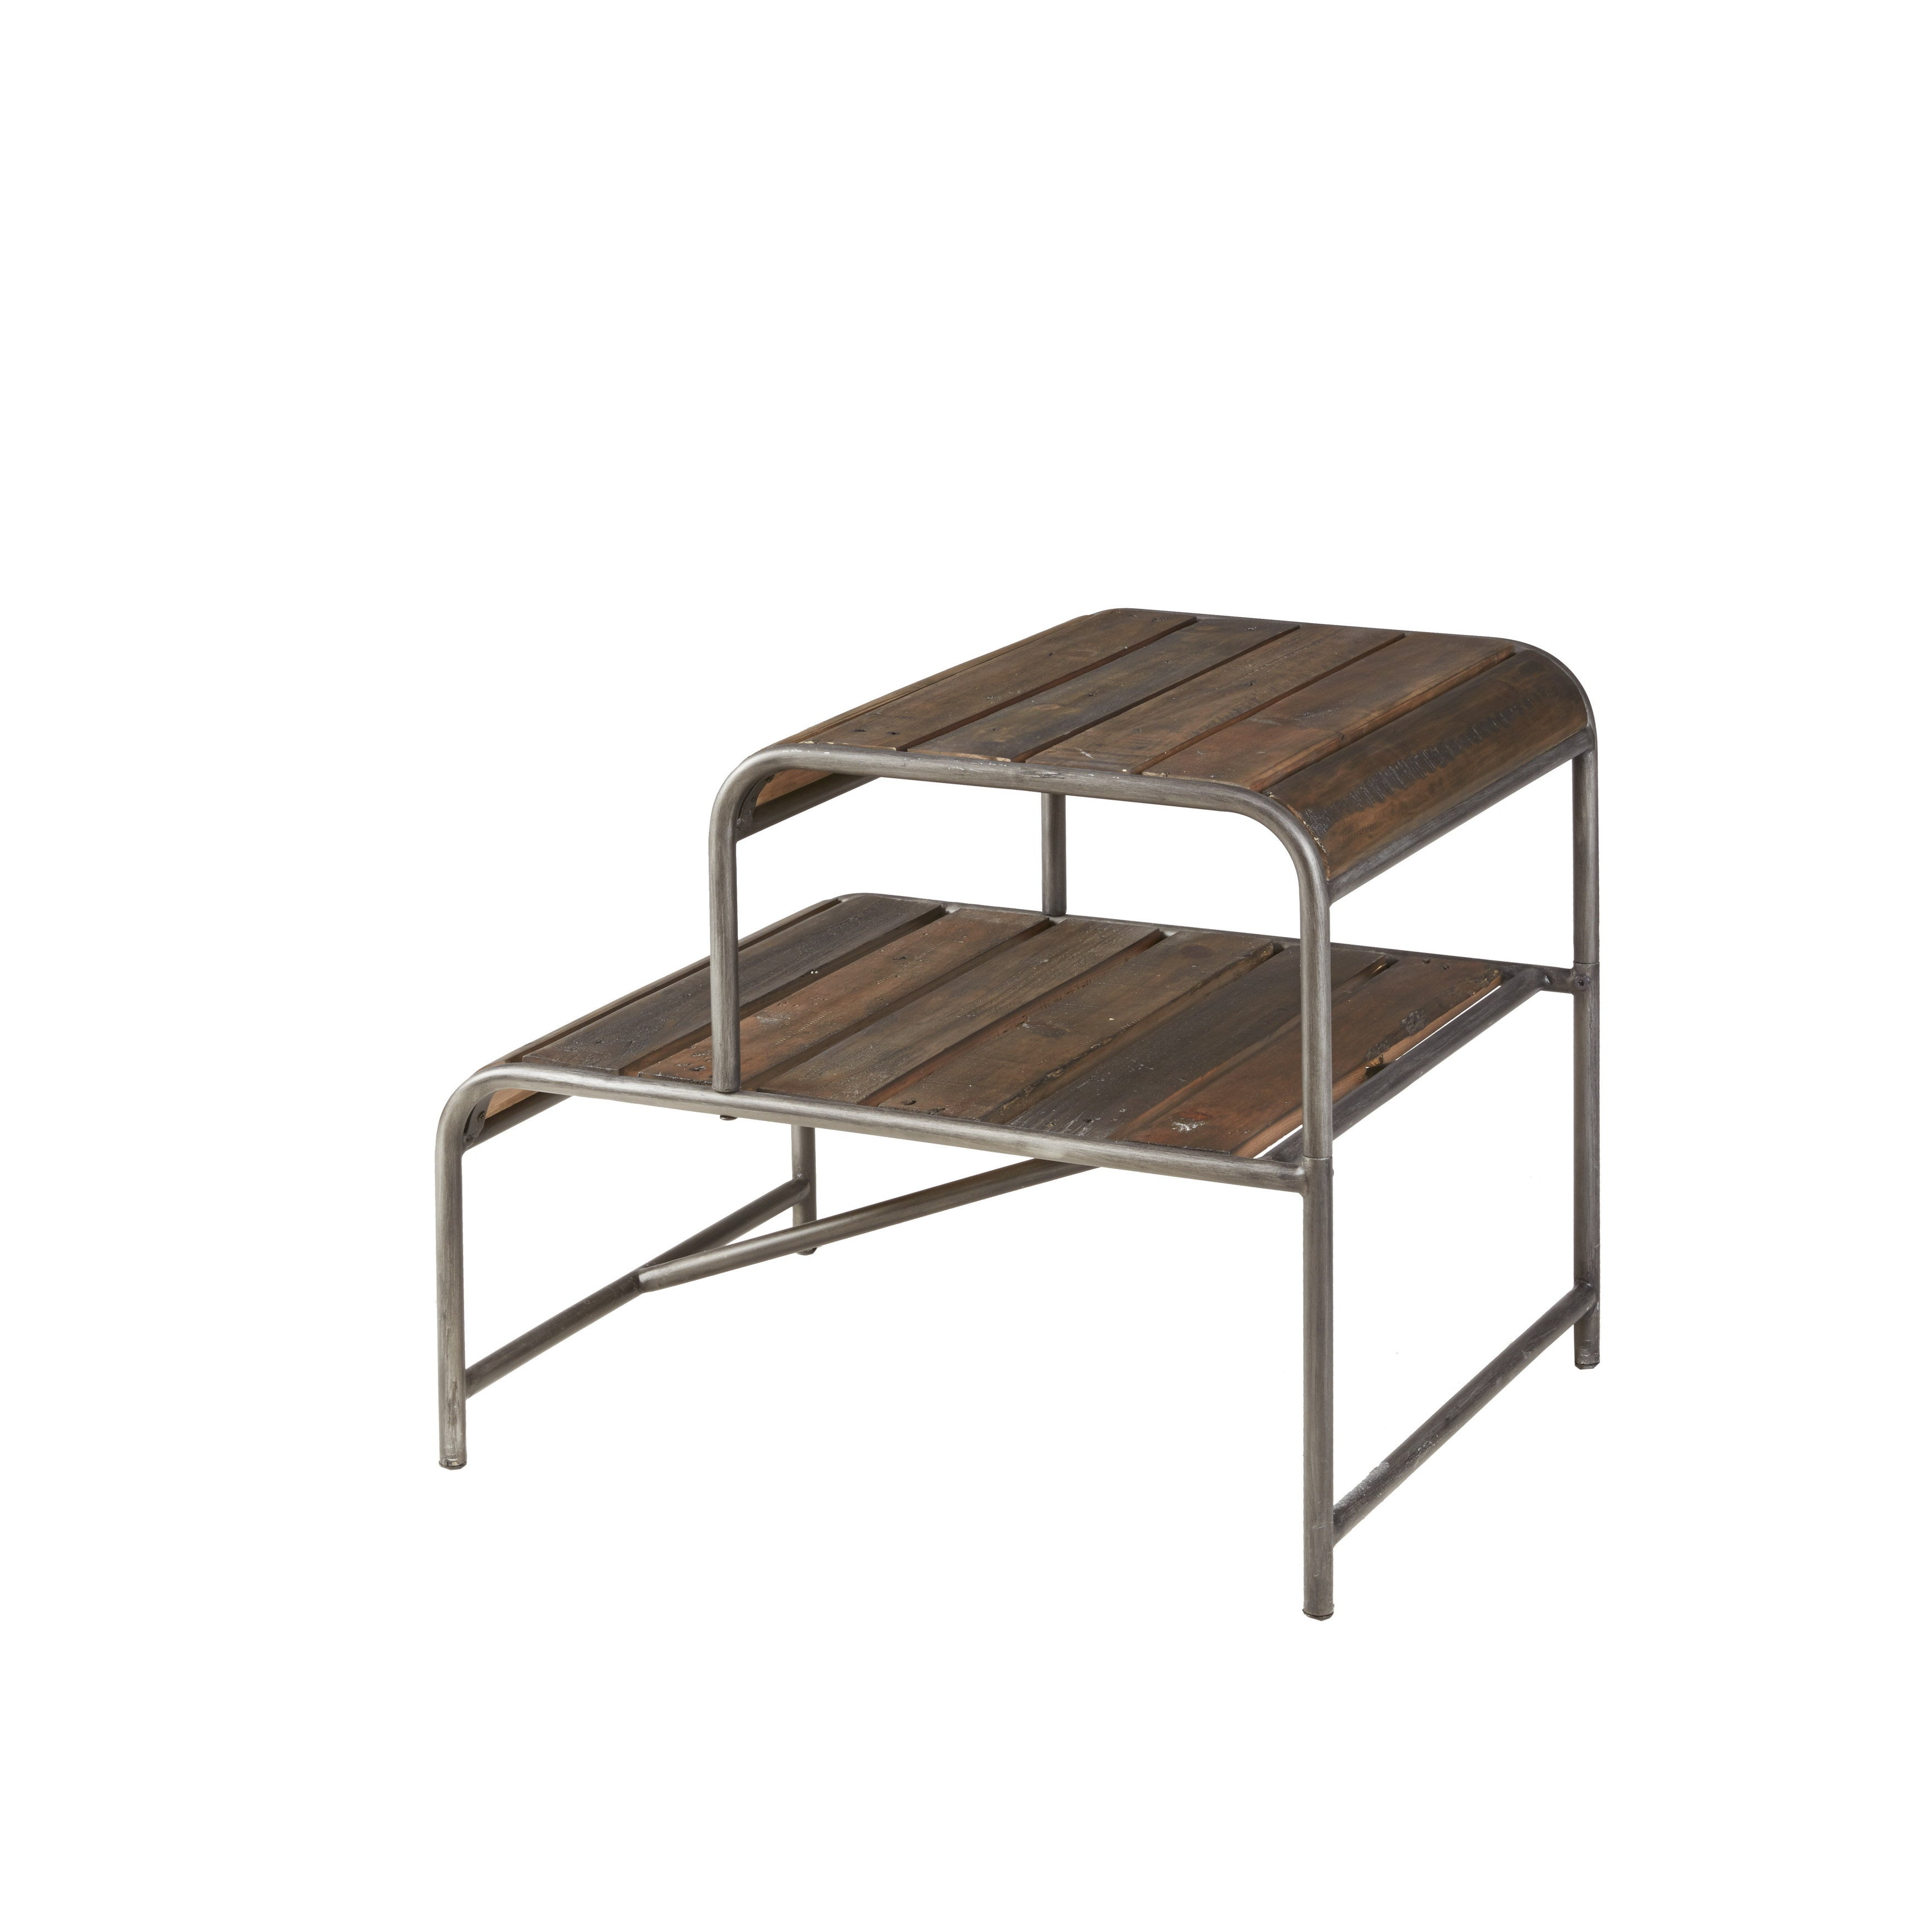 Outstanding Everett Reclaimed Wood End Table With Gunmetal Frame Gmtry Best Dining Table And Chair Ideas Images Gmtryco